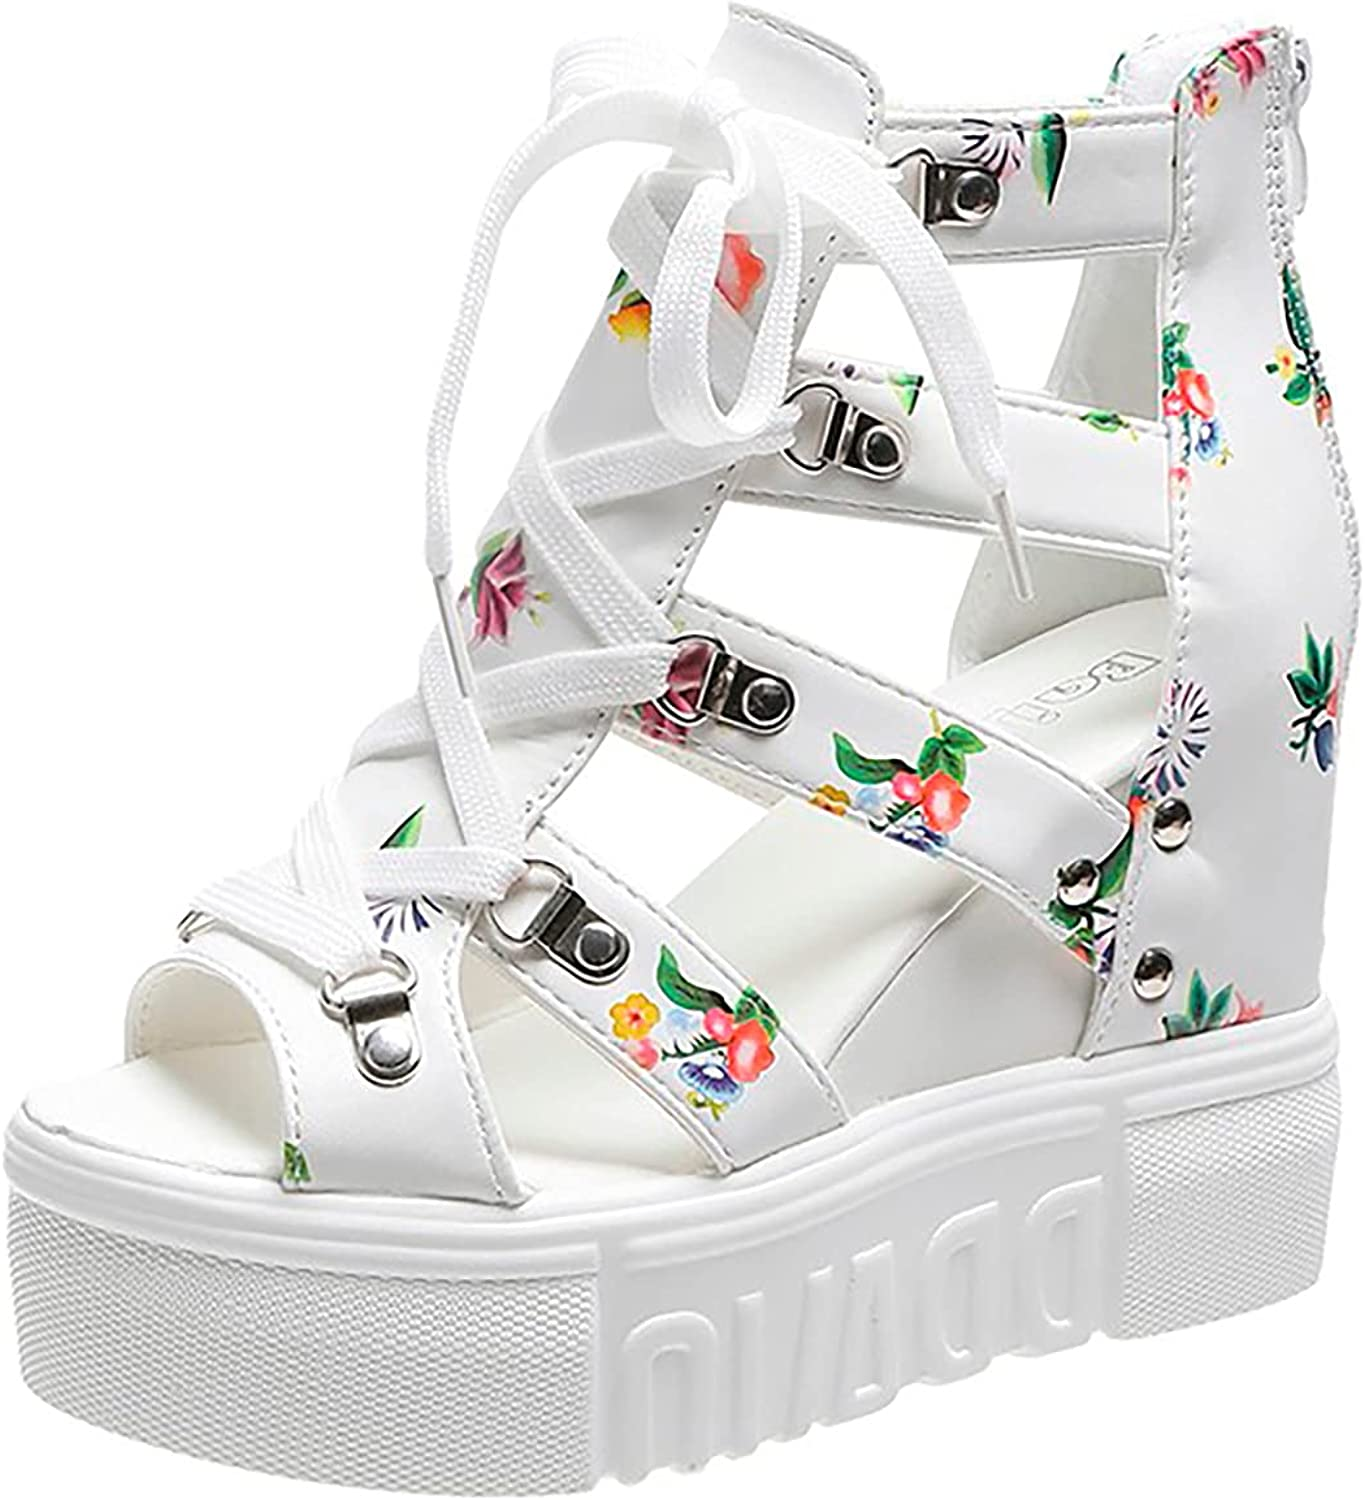 Sandals for Women Casual Summer Roman Multicolor Shoes Ankle Strap Strappy Slide Open Toe Heeled Sandals